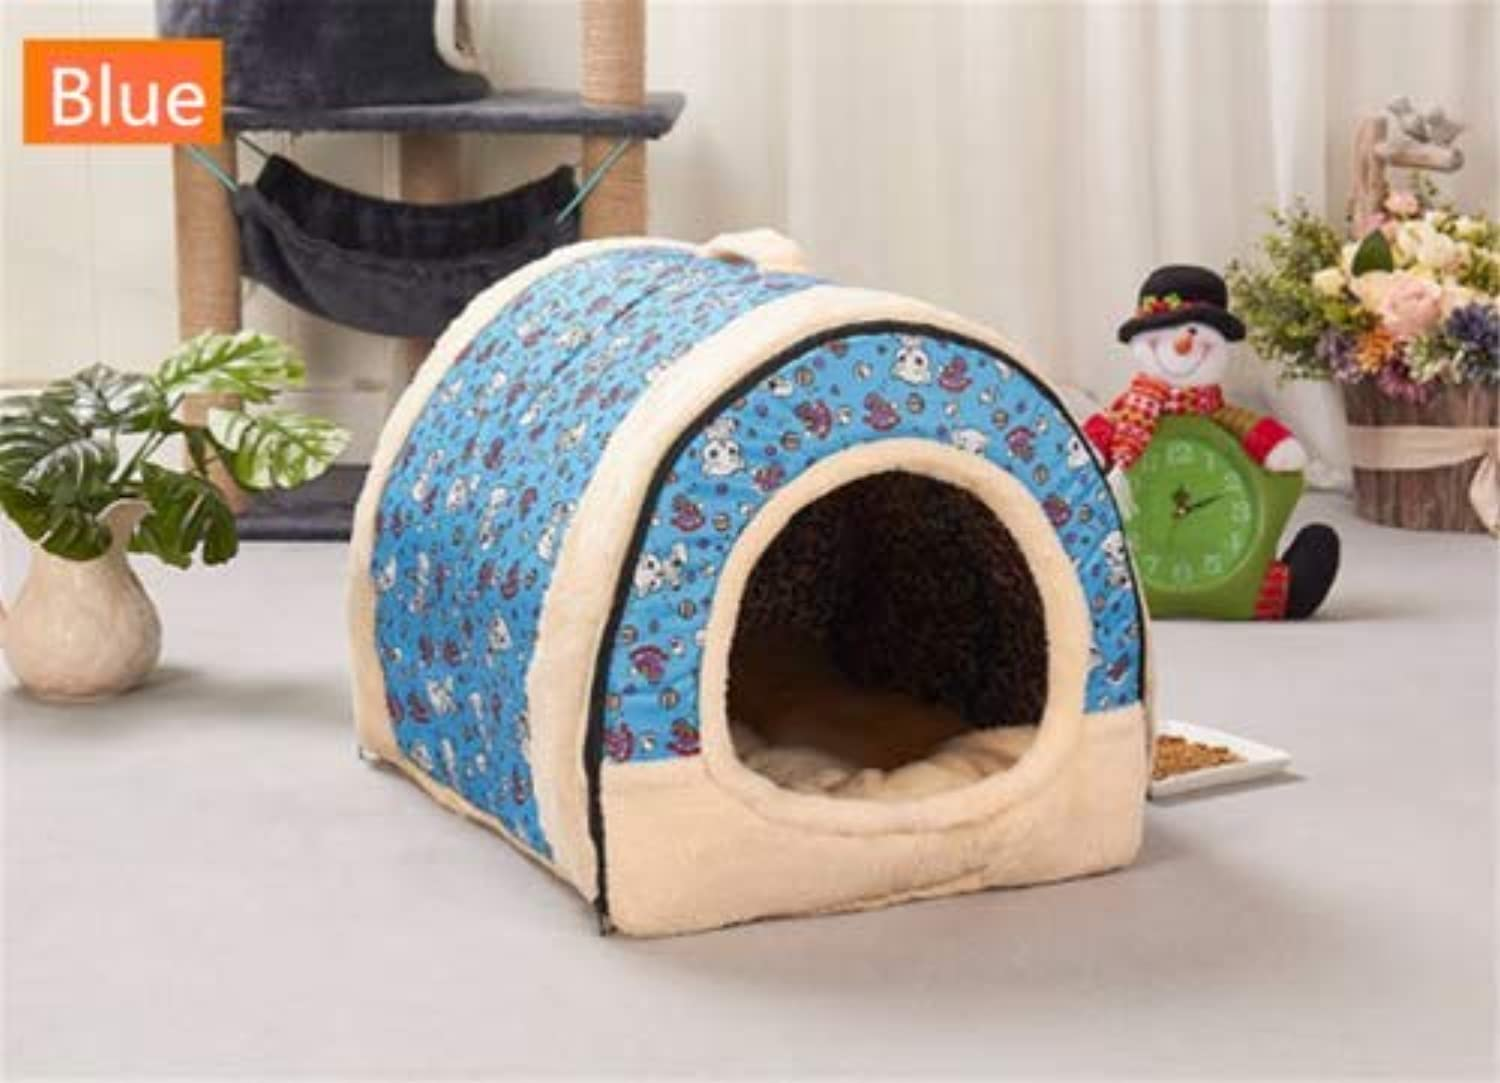 Gaobey Pet Cat Igloo Bed Small Dog Soft Bed Met House Waterproof Covered 1PC (S,M,L) (M453836 cm, bluee)